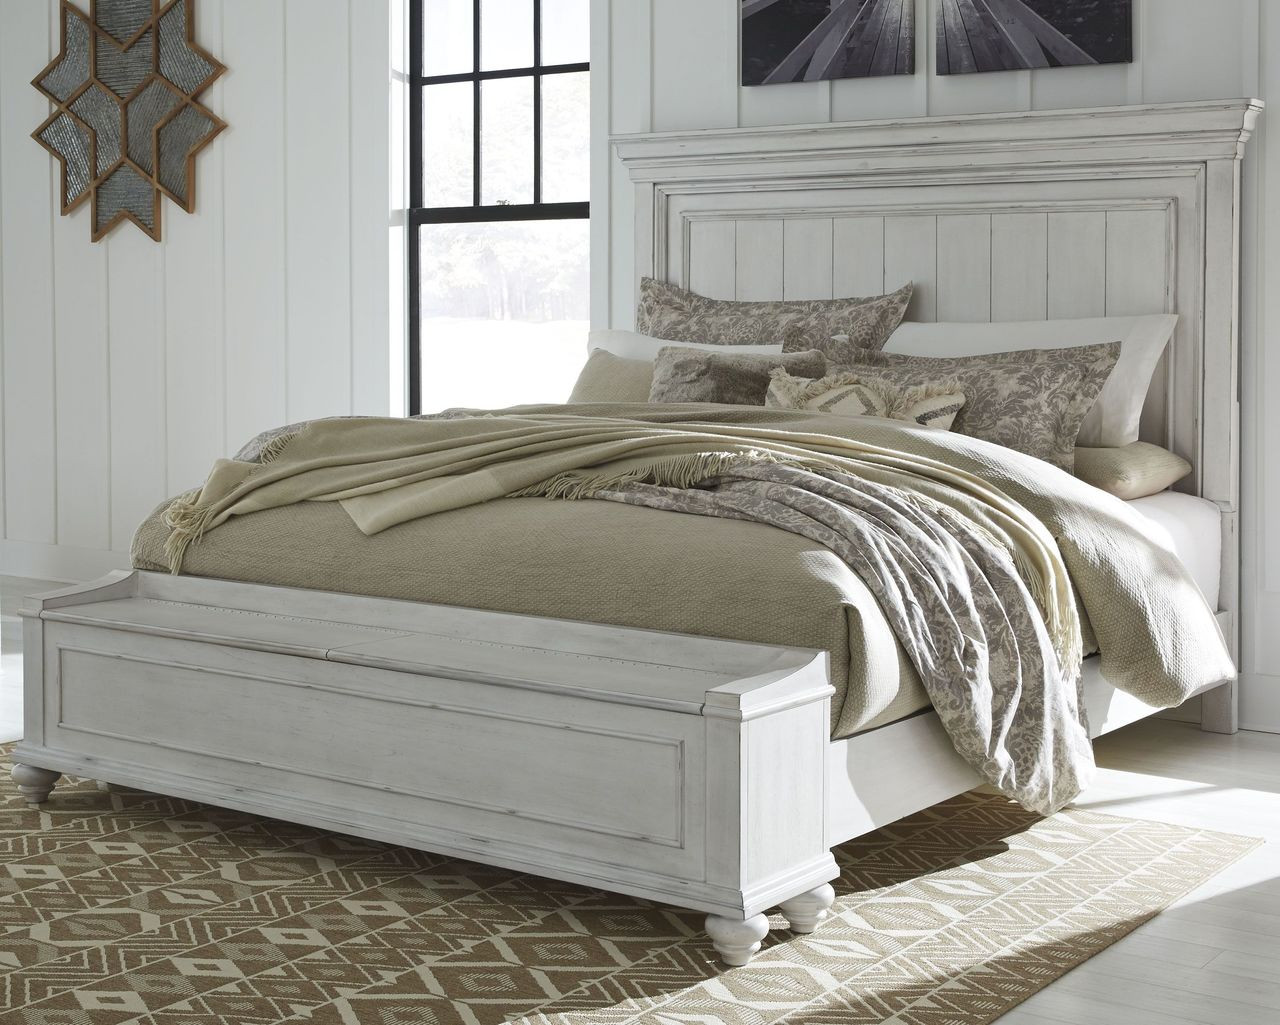 Picture of: Ashley Kanwyn Whitewash Queen Panel Bed With Storage On Sale At Red Shed Furniture Serving Goldsboro Wilson Greenville Nc